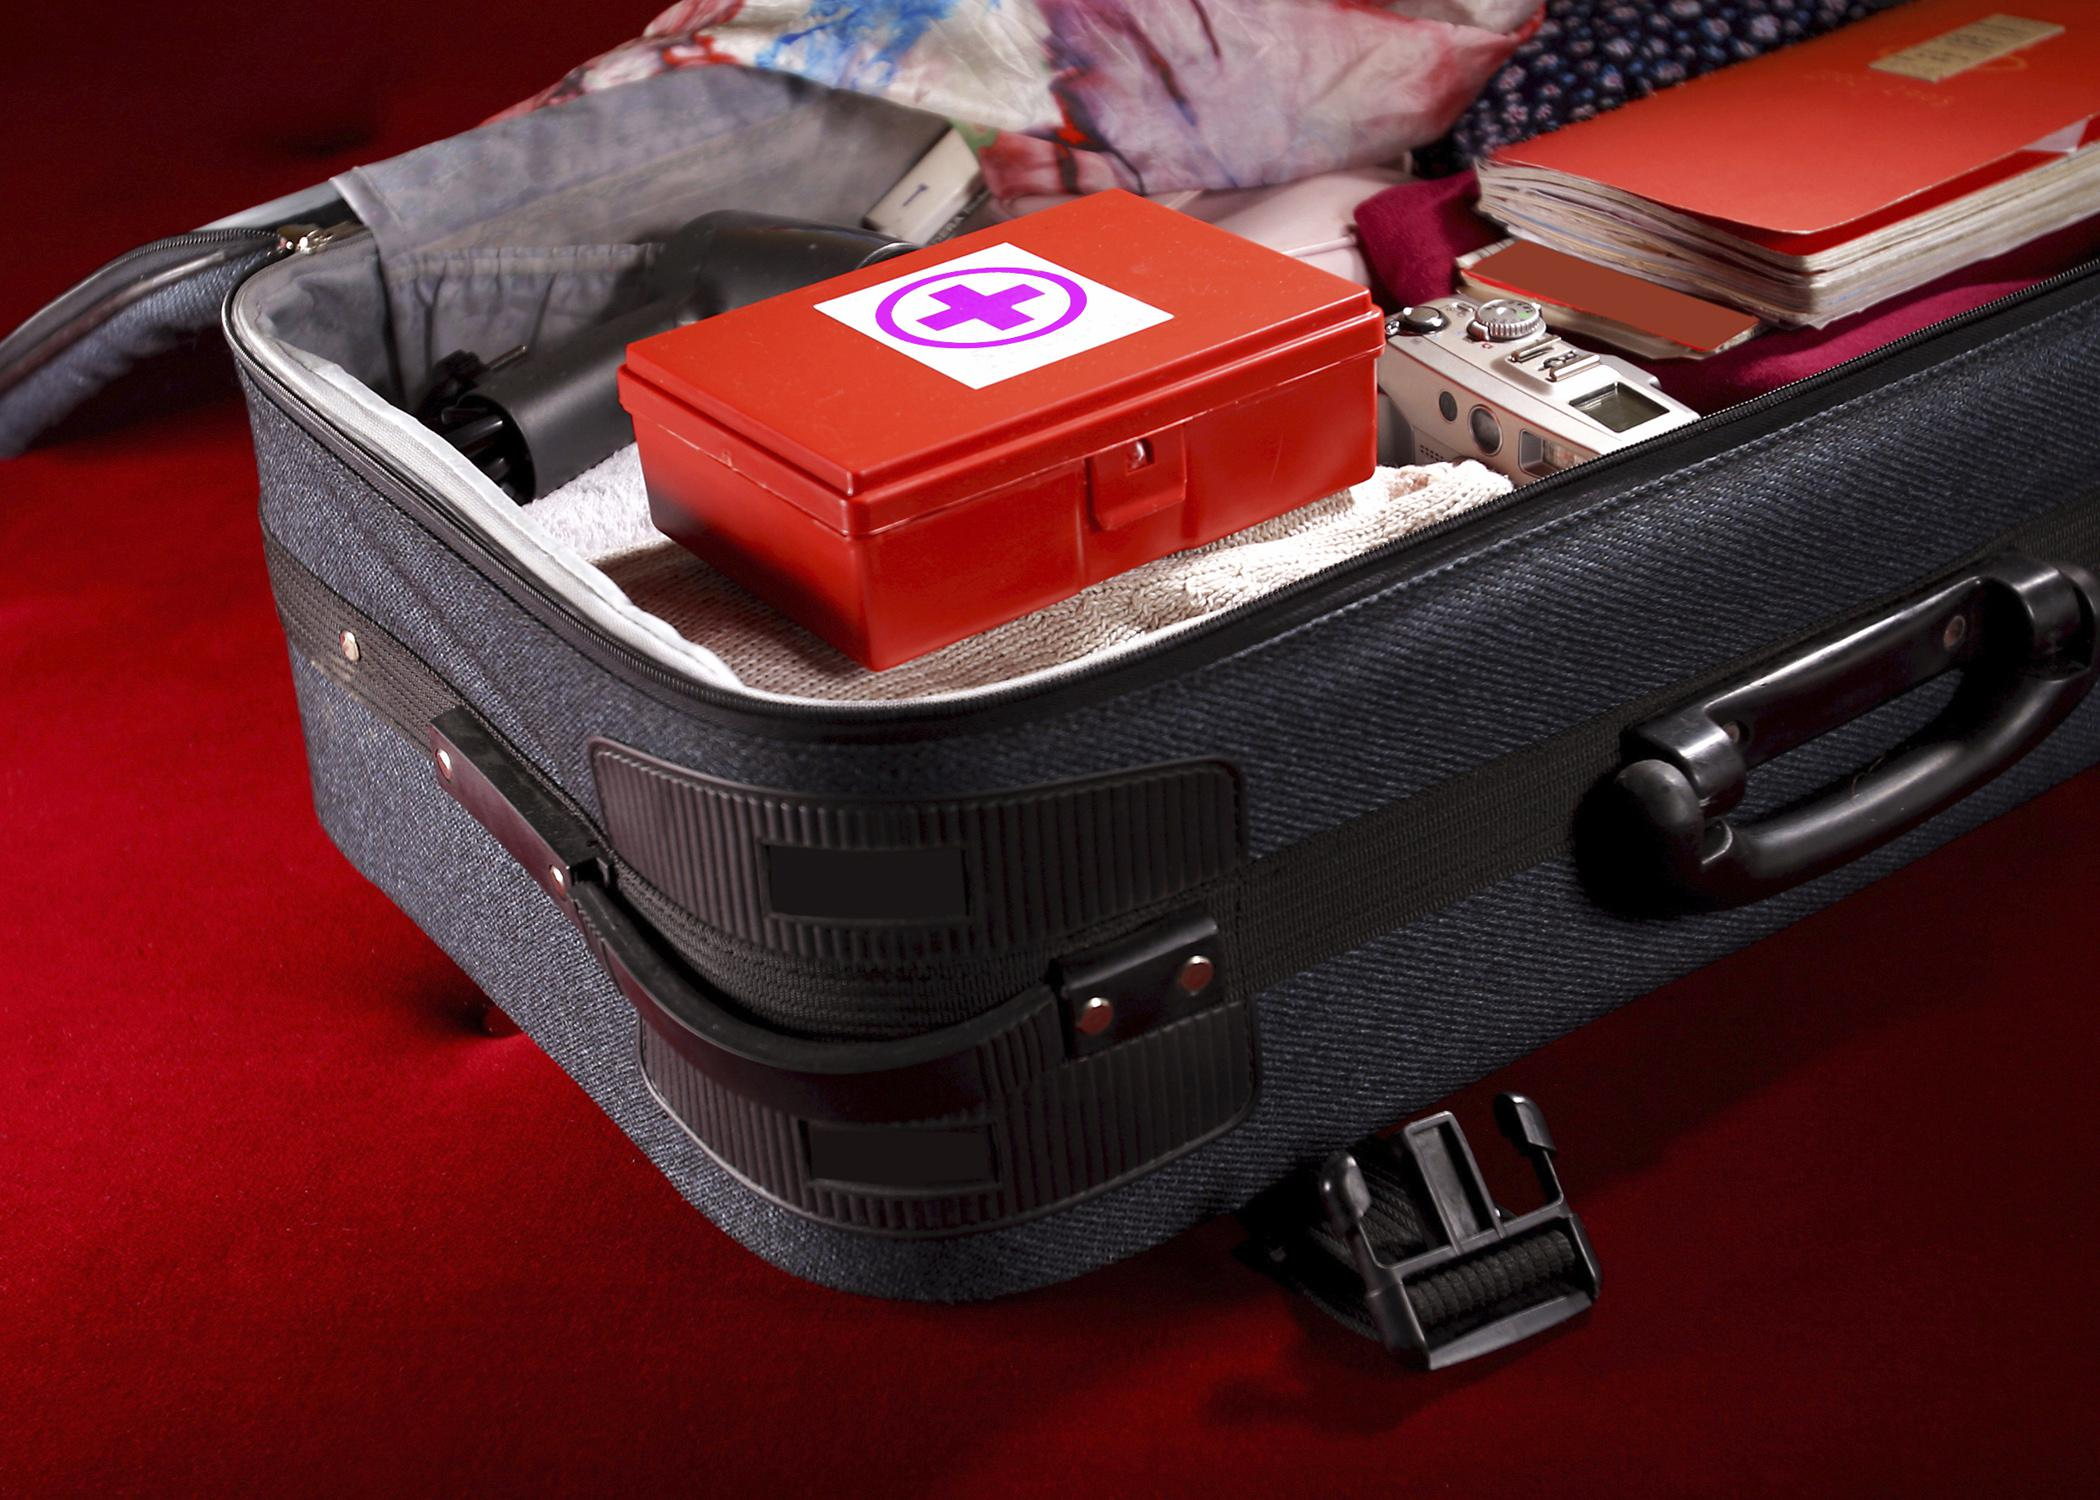 Travel first-aid kits can be small enough to fit in a suitcase. (Photo by iStock)